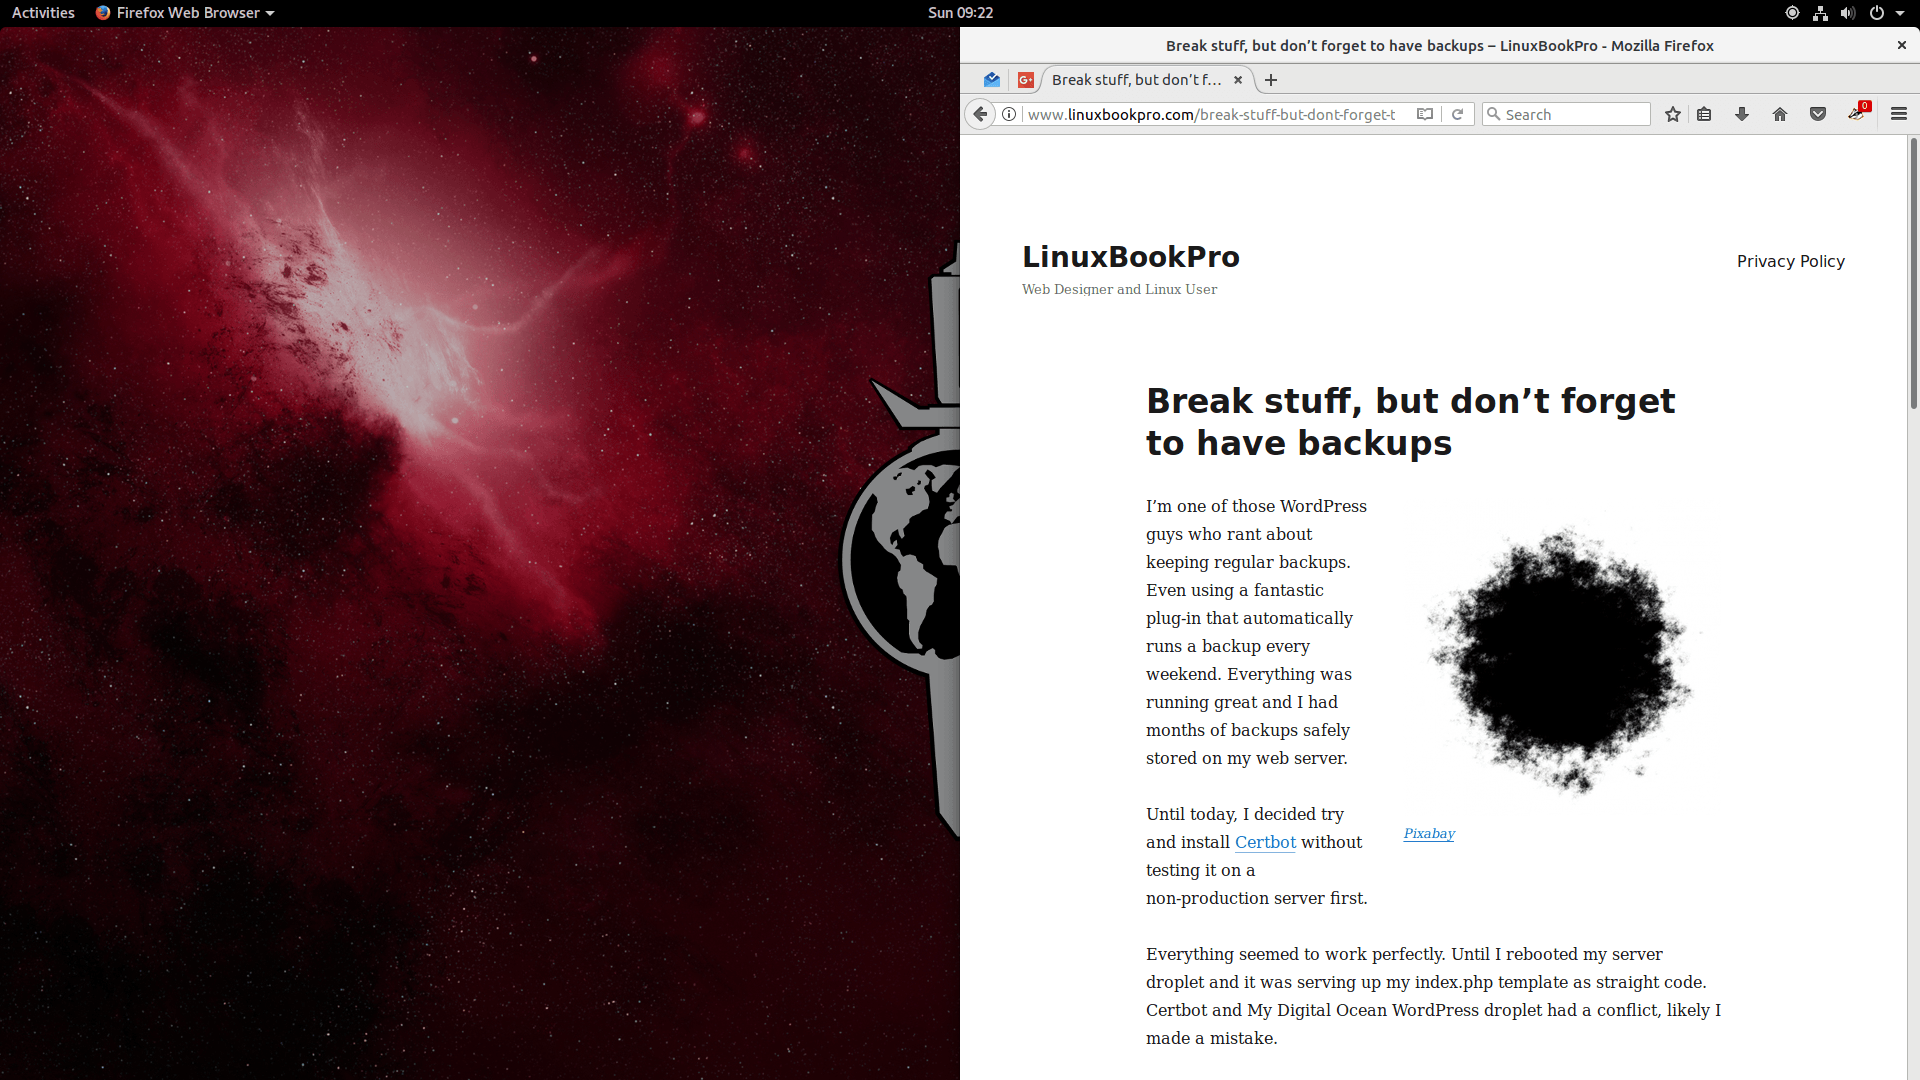 Desktop with a snapped window of Firefox viewing this website